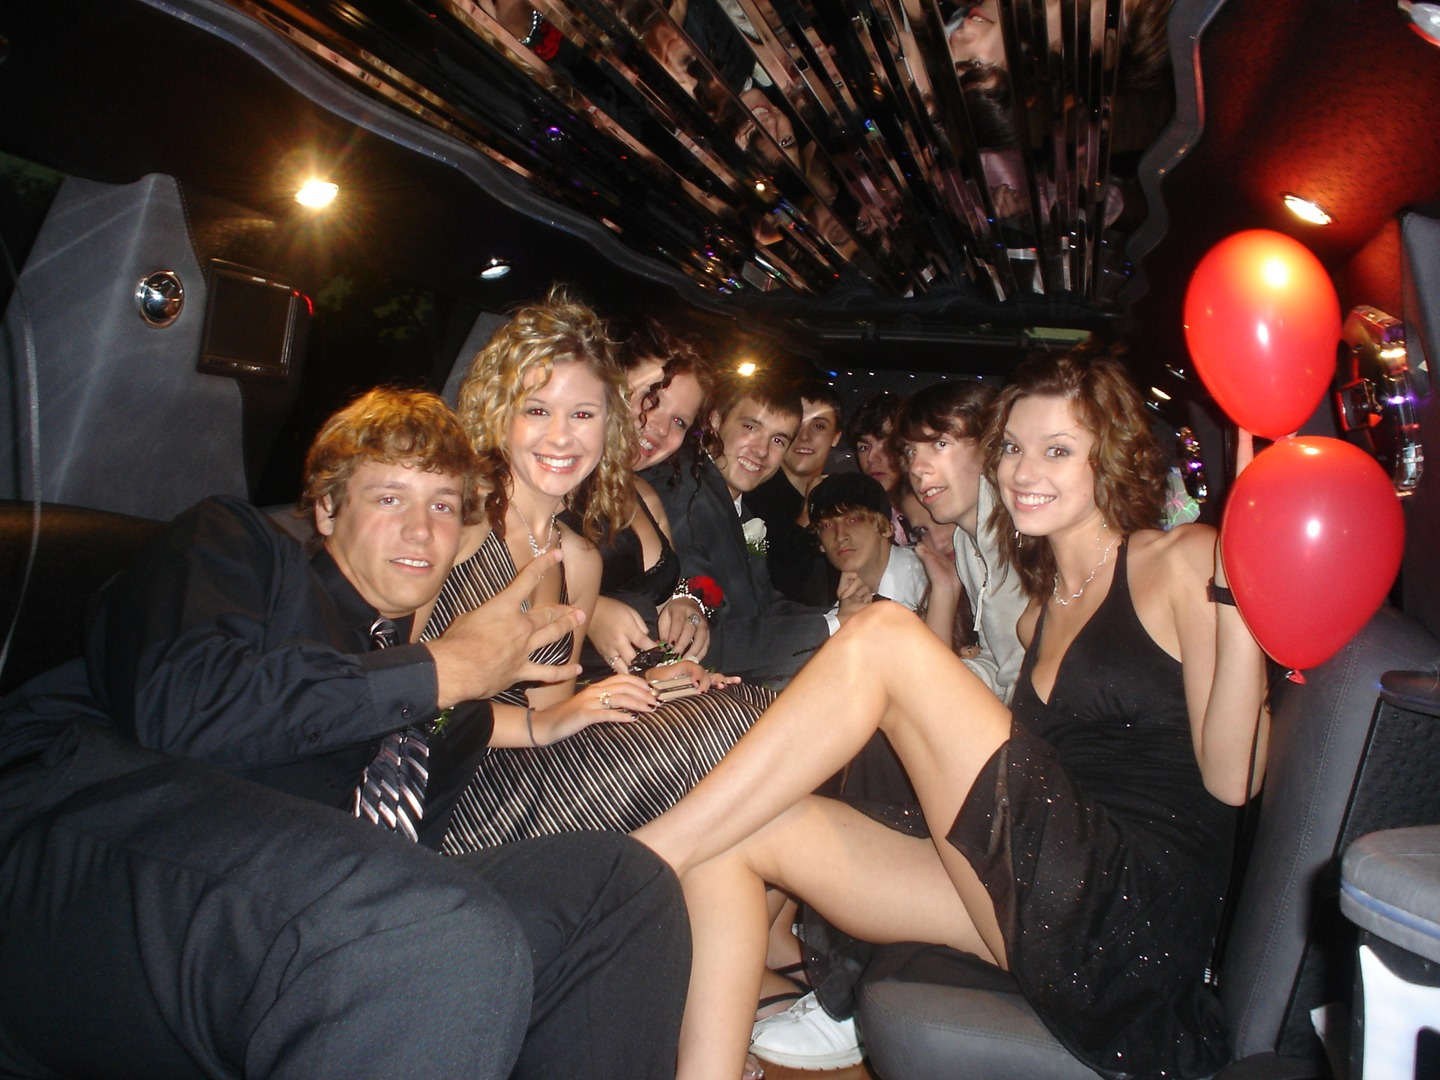 Limo rentals near knoxville - Salem Limo Service Birthday Party Limo Call 541 344 5466